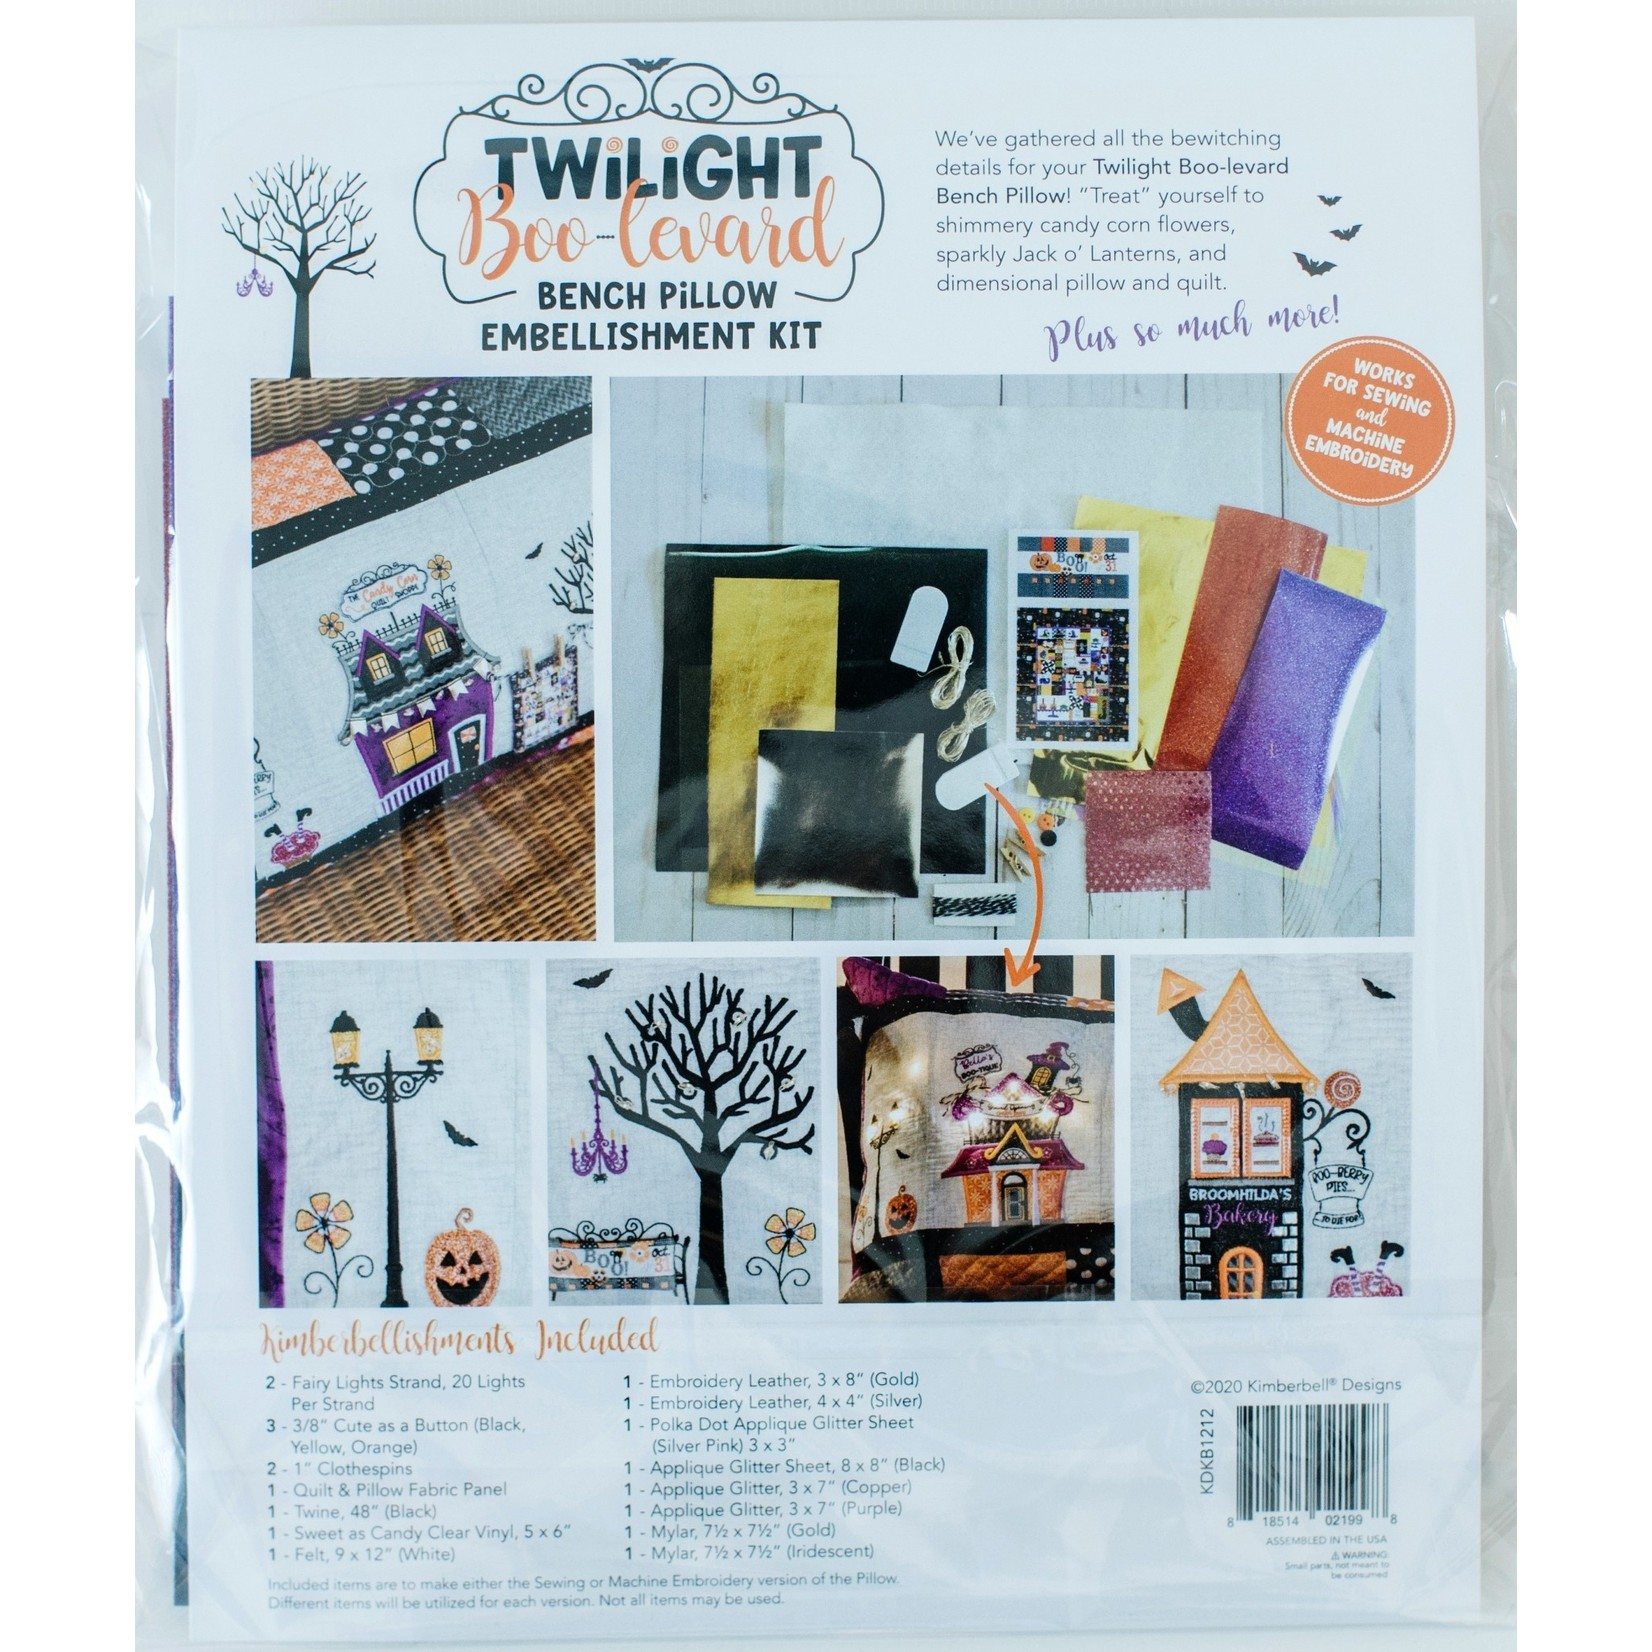 KIMBERBELL DESIGNS Twilight Boo-levard Embellishment Kit